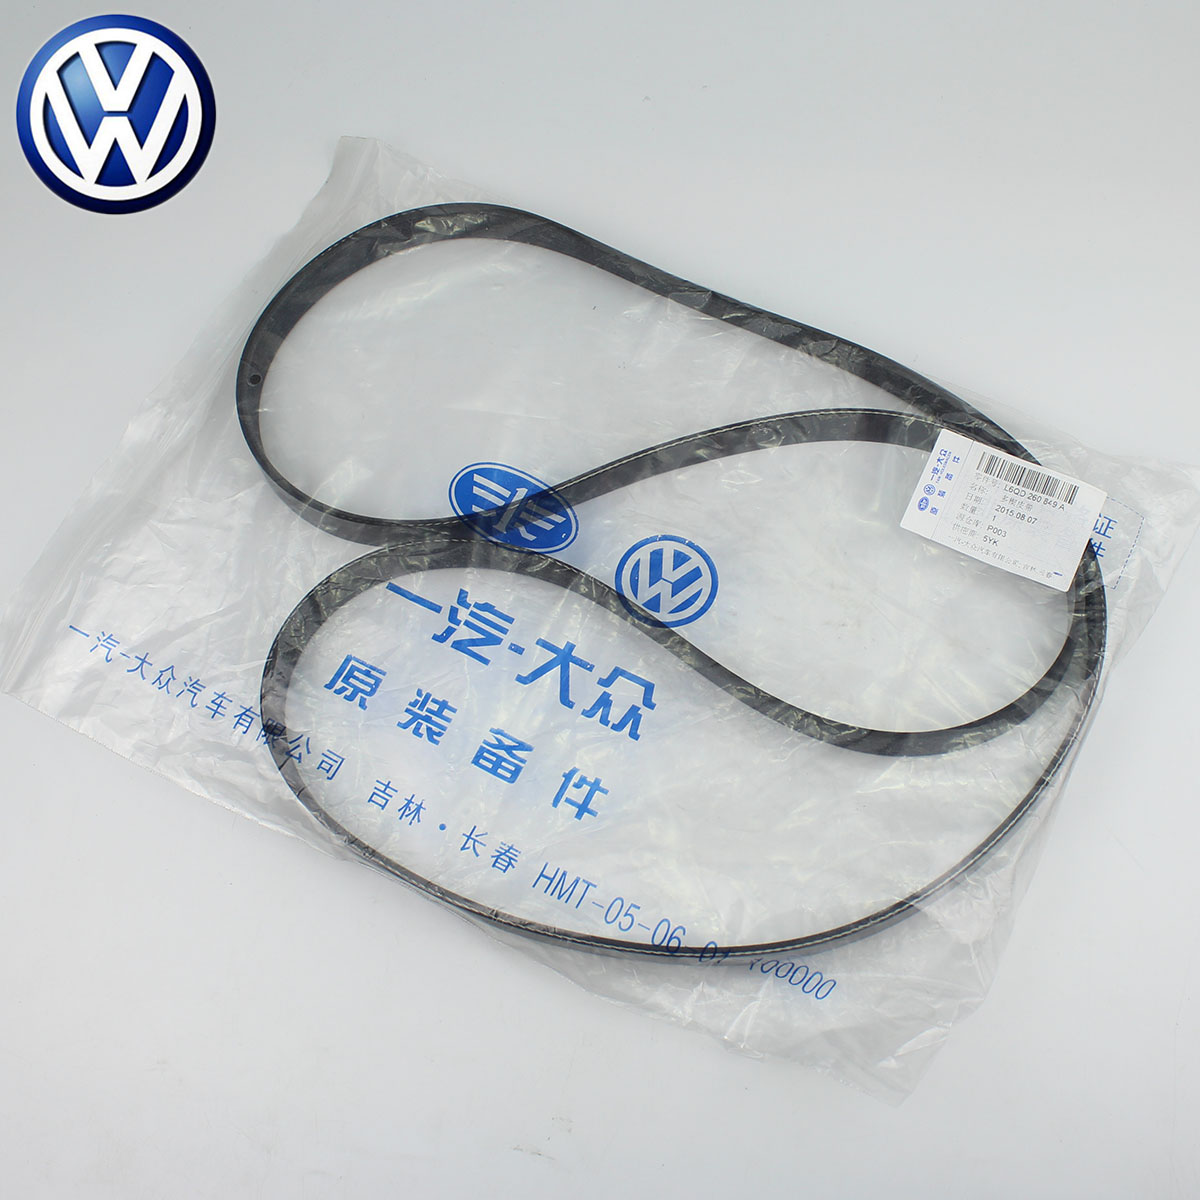 New 6QD 260 849 A Compressor Drive Belt For VW EOS GOLF R32 GTI JETTA <font><b>TIGUAN</b></font> <font><b>1.4</b></font> <font><b>TSI</b></font> image